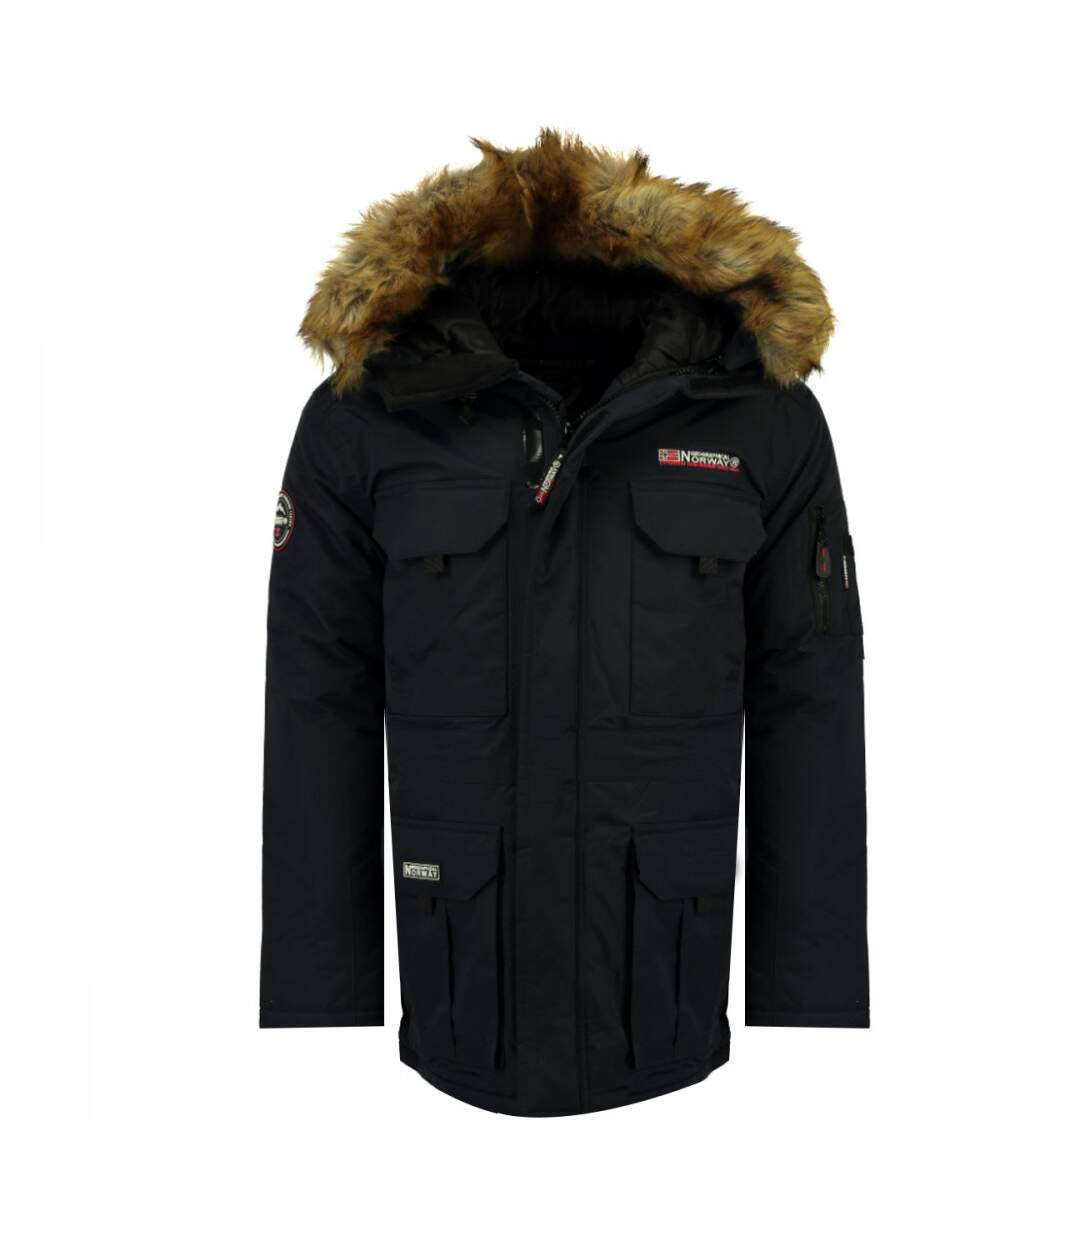 Parka noir femme Geographical Norway Alpes